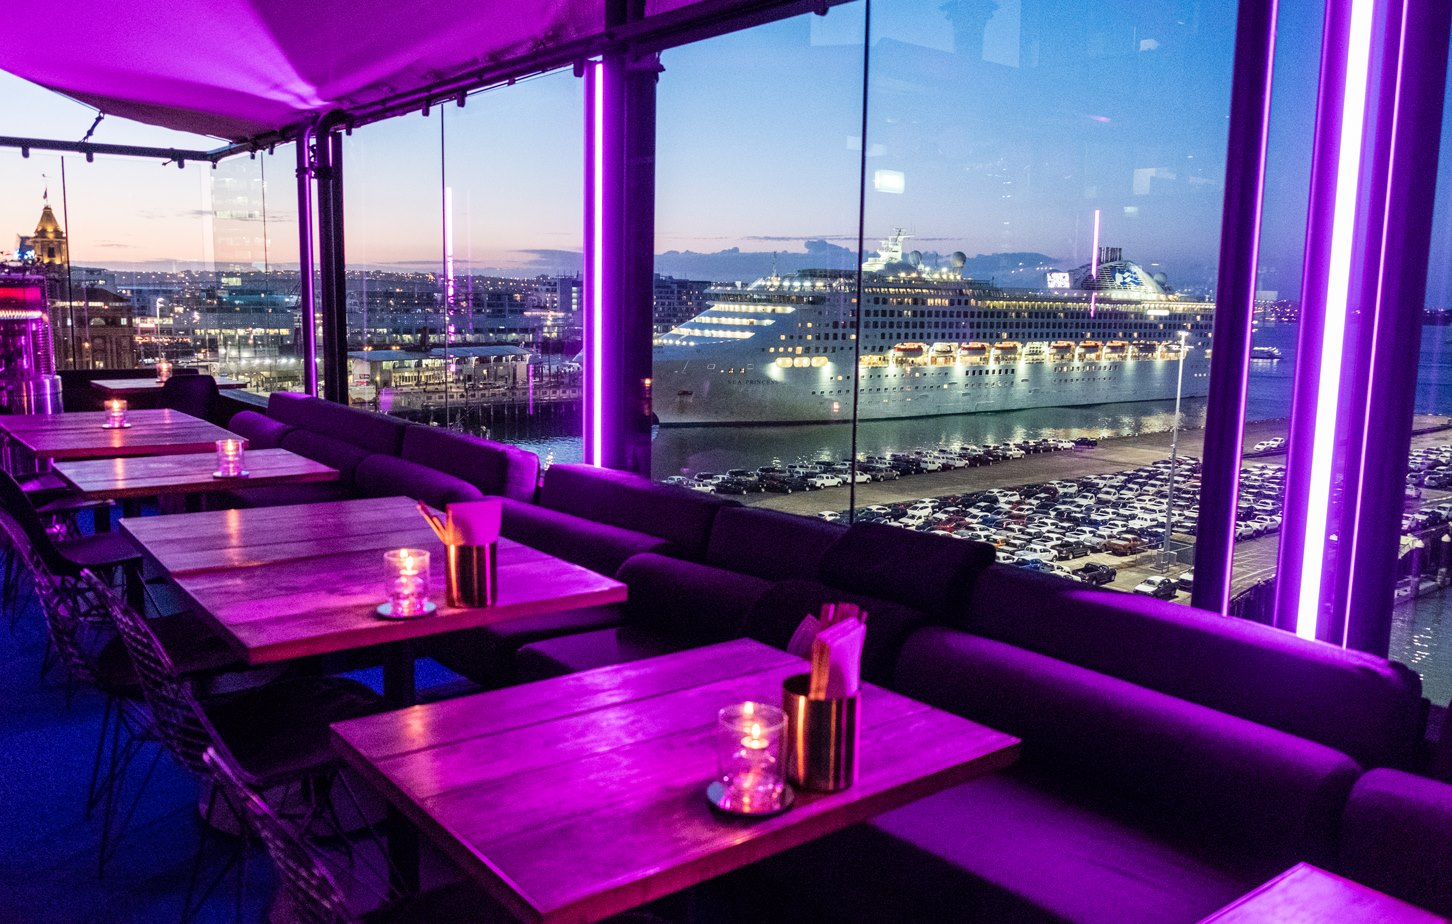 Artificial turf restaurant and bar